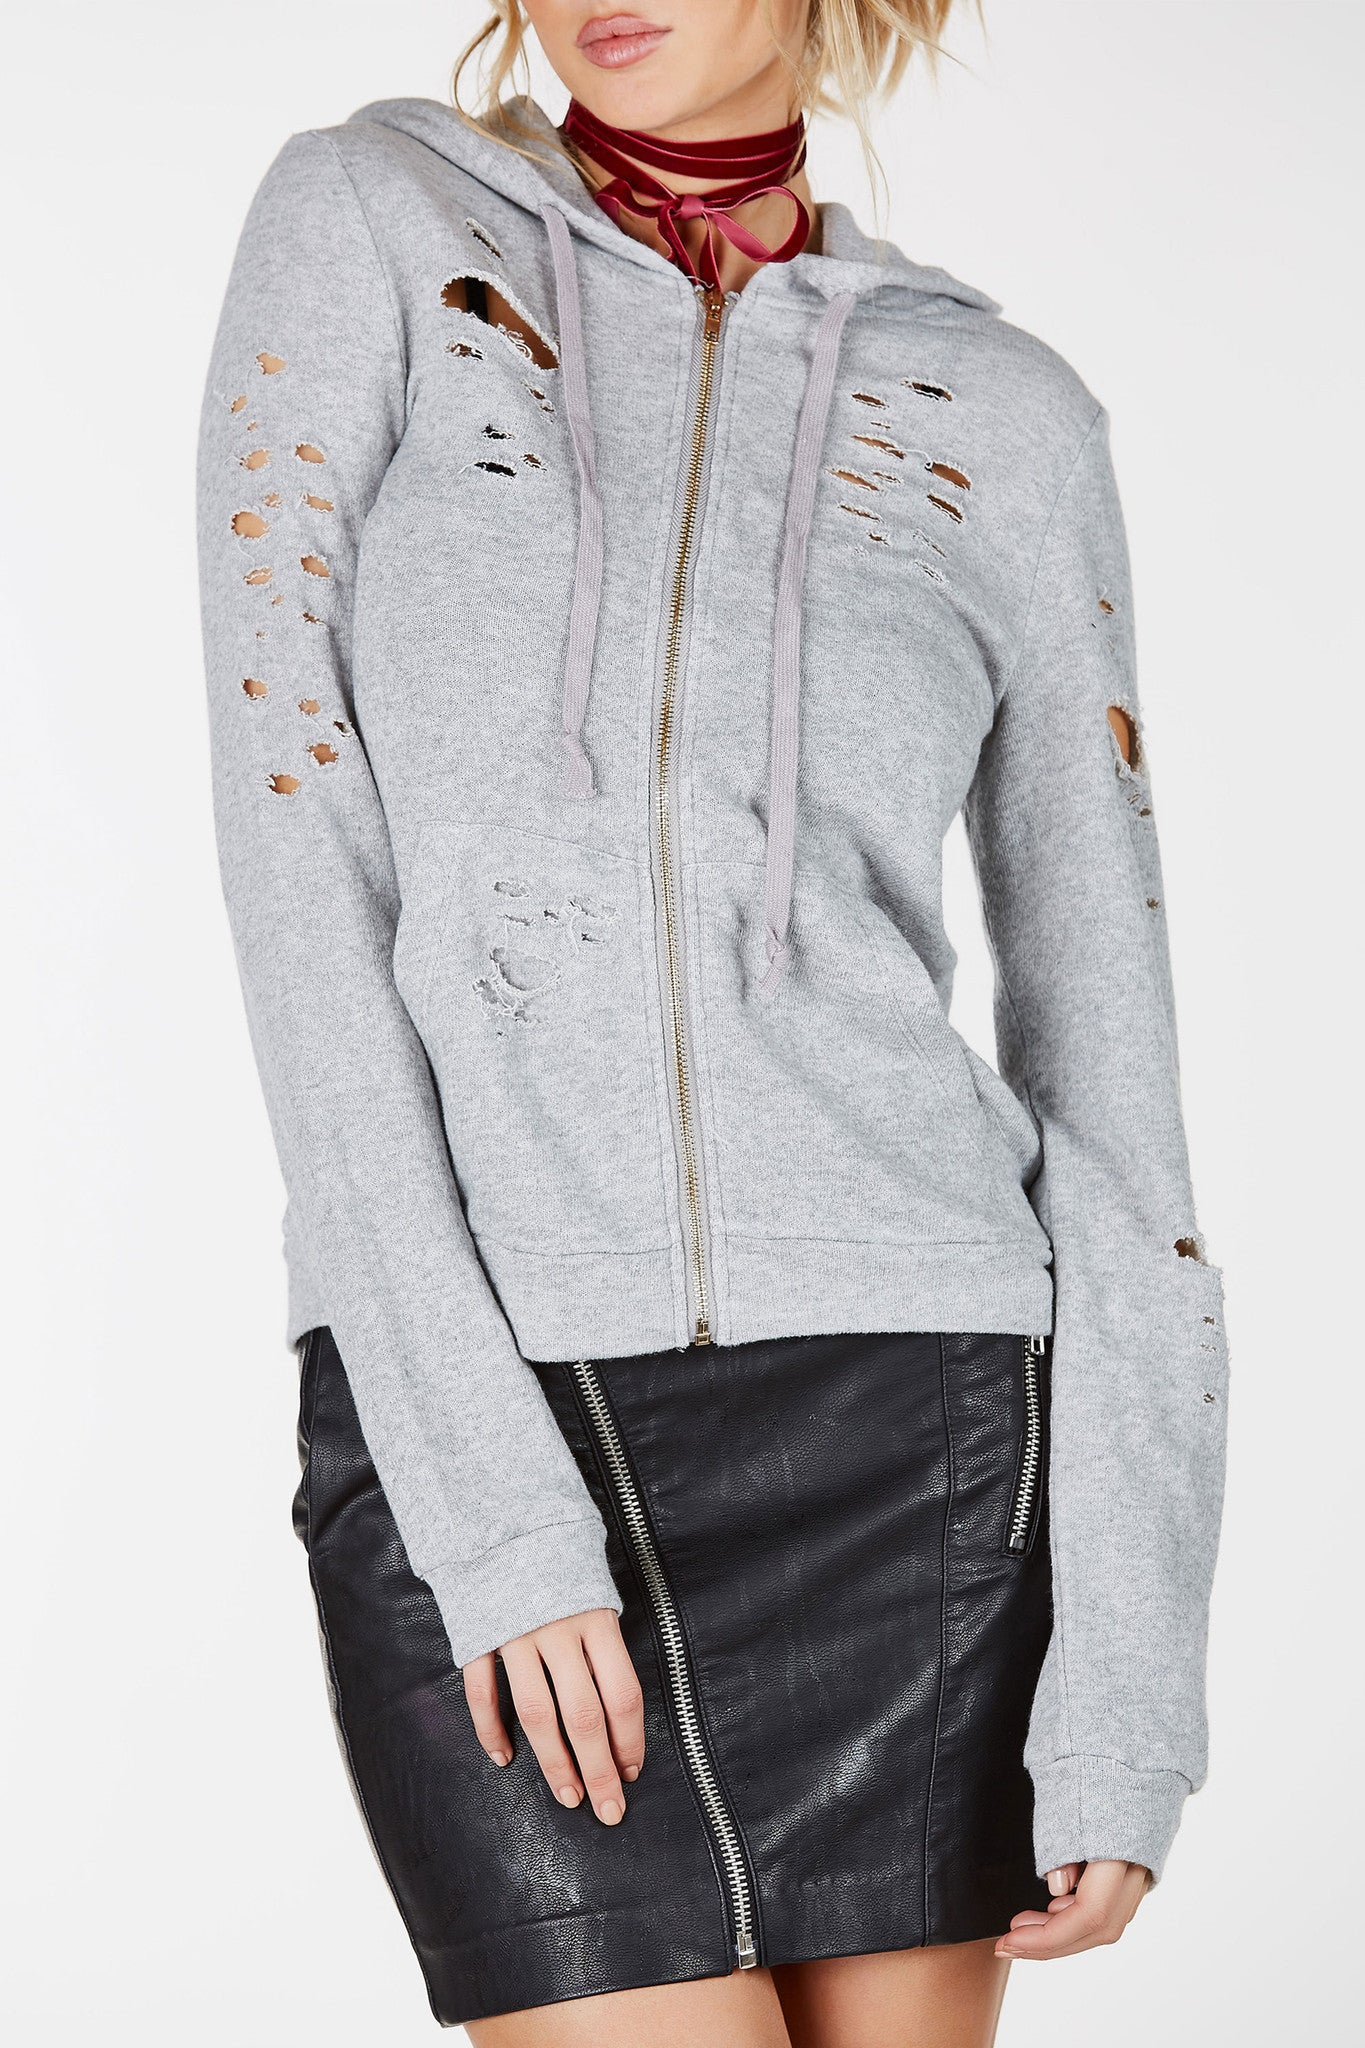 Long sleeve hoodie with drawstring detail. Distressed throughout with two front pockets.